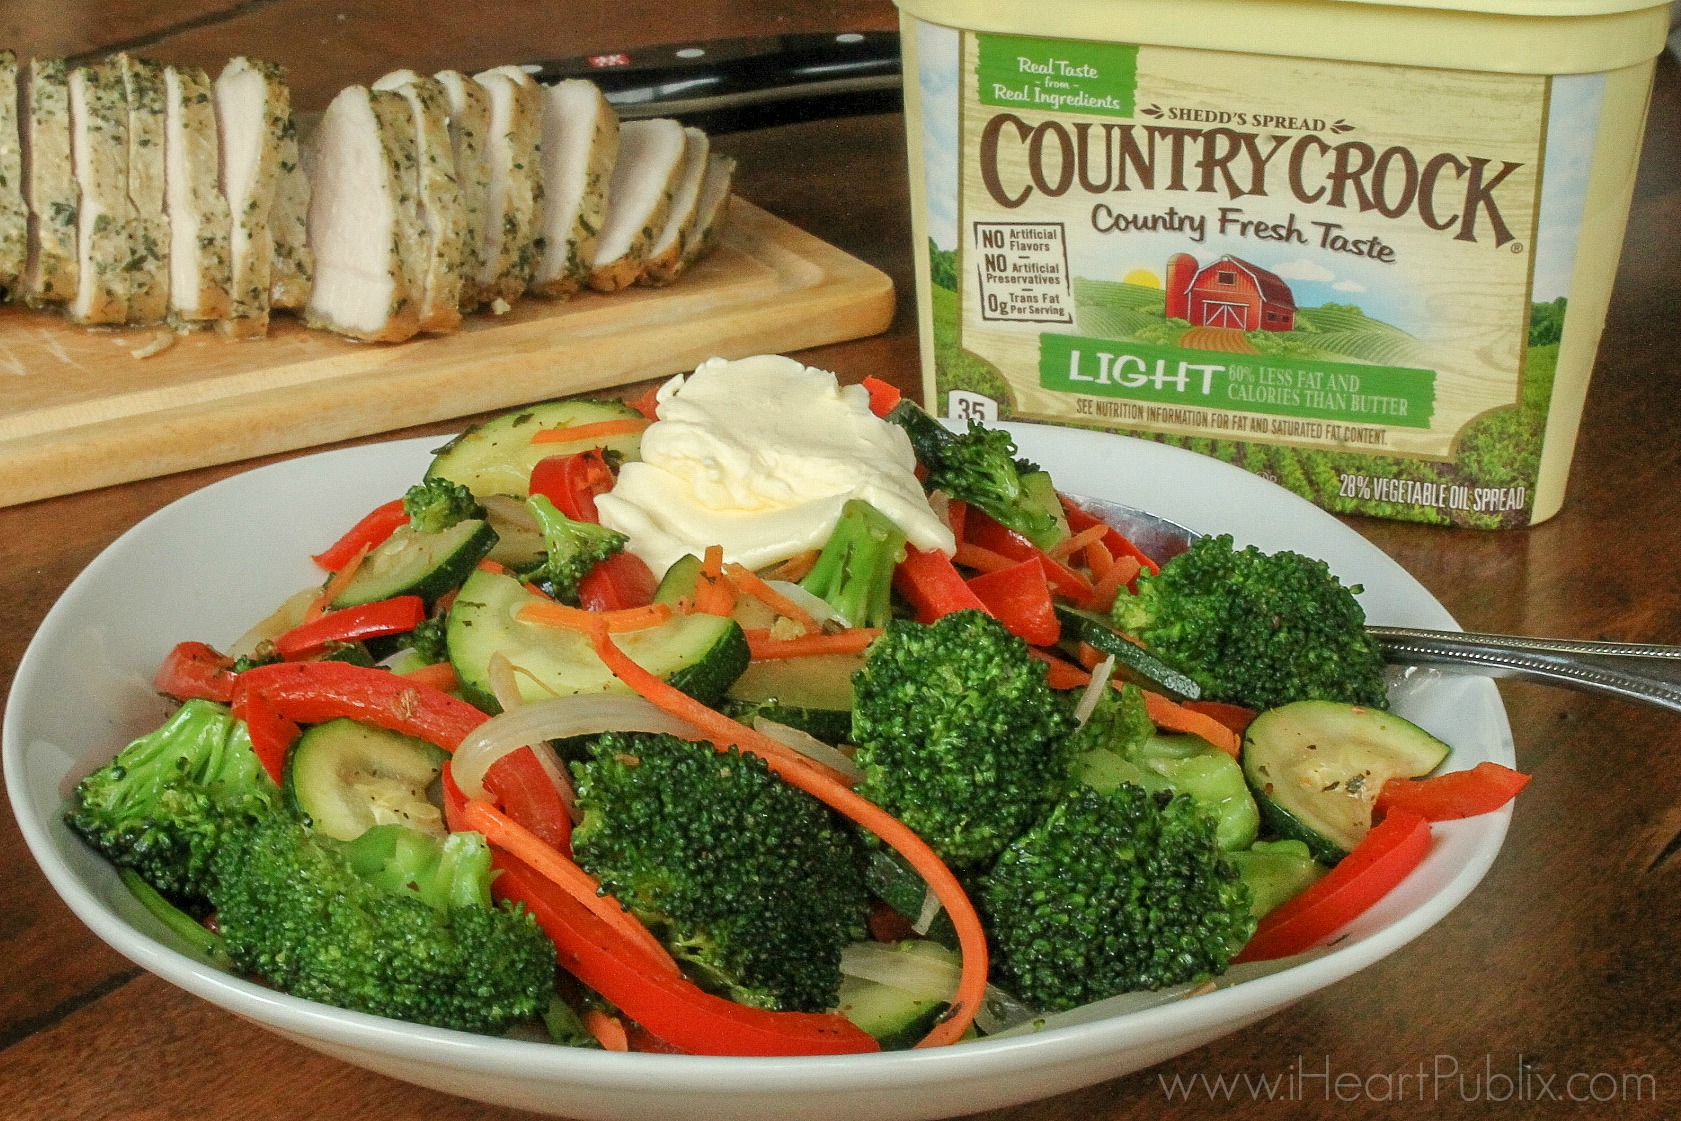 Simply Sautéed Vegetables - Serve Up Great Taste And Save $2 On Country Crock At Publix 2